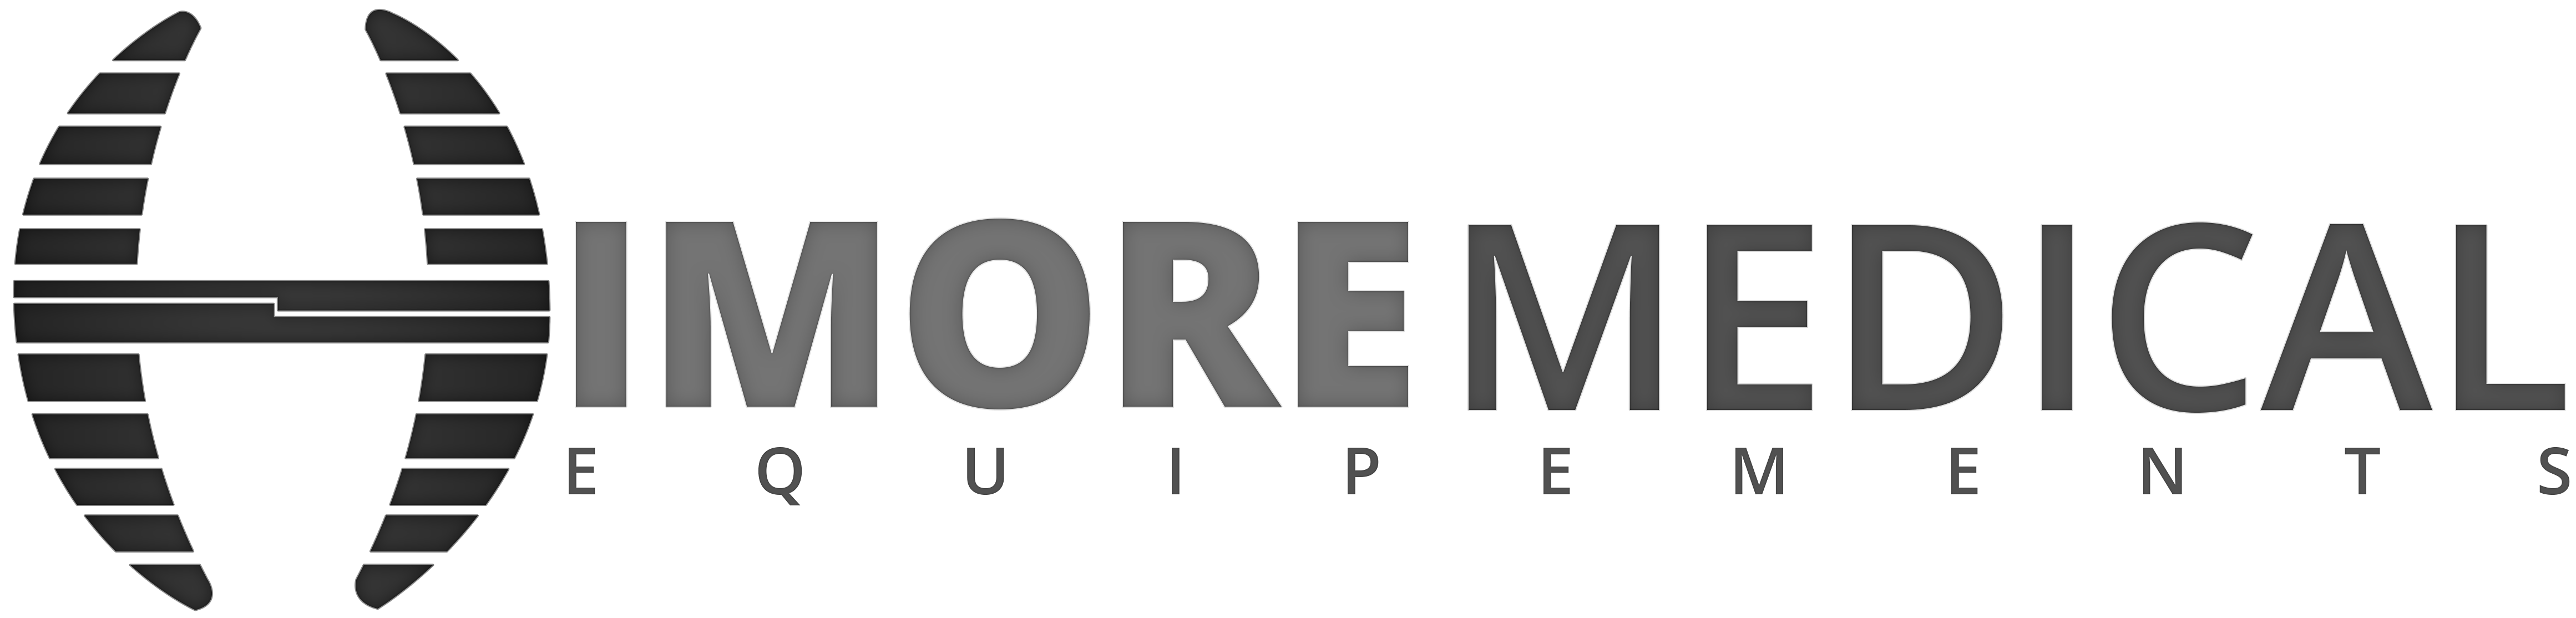 Himore medical logo Monochrome